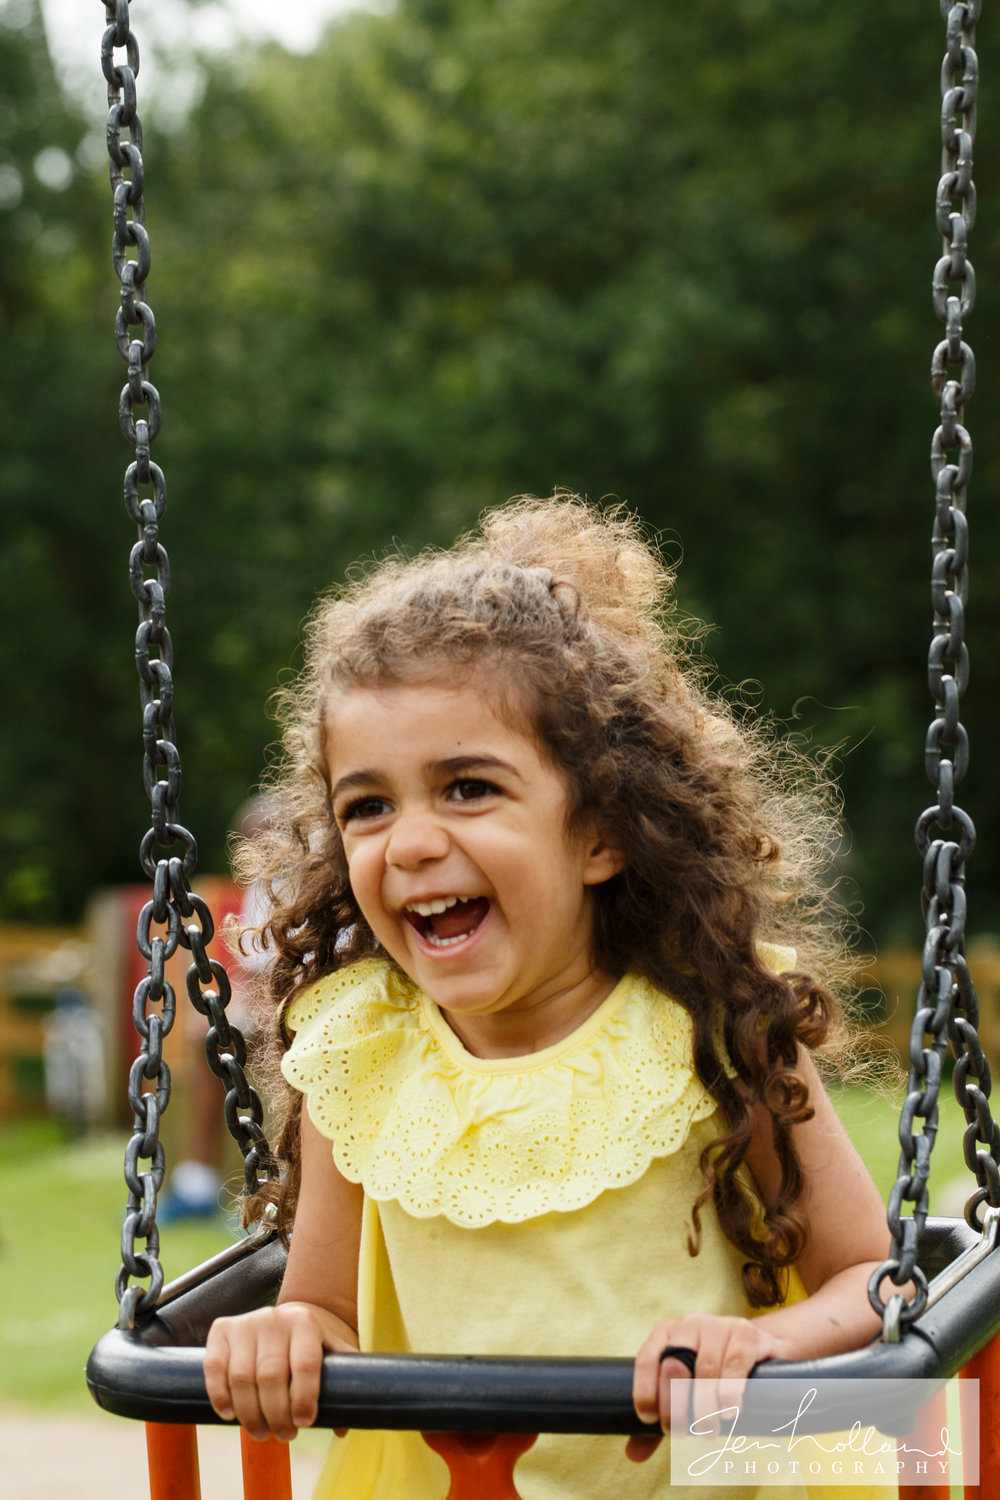 little-girl-on-a-swing-toddlers-cove